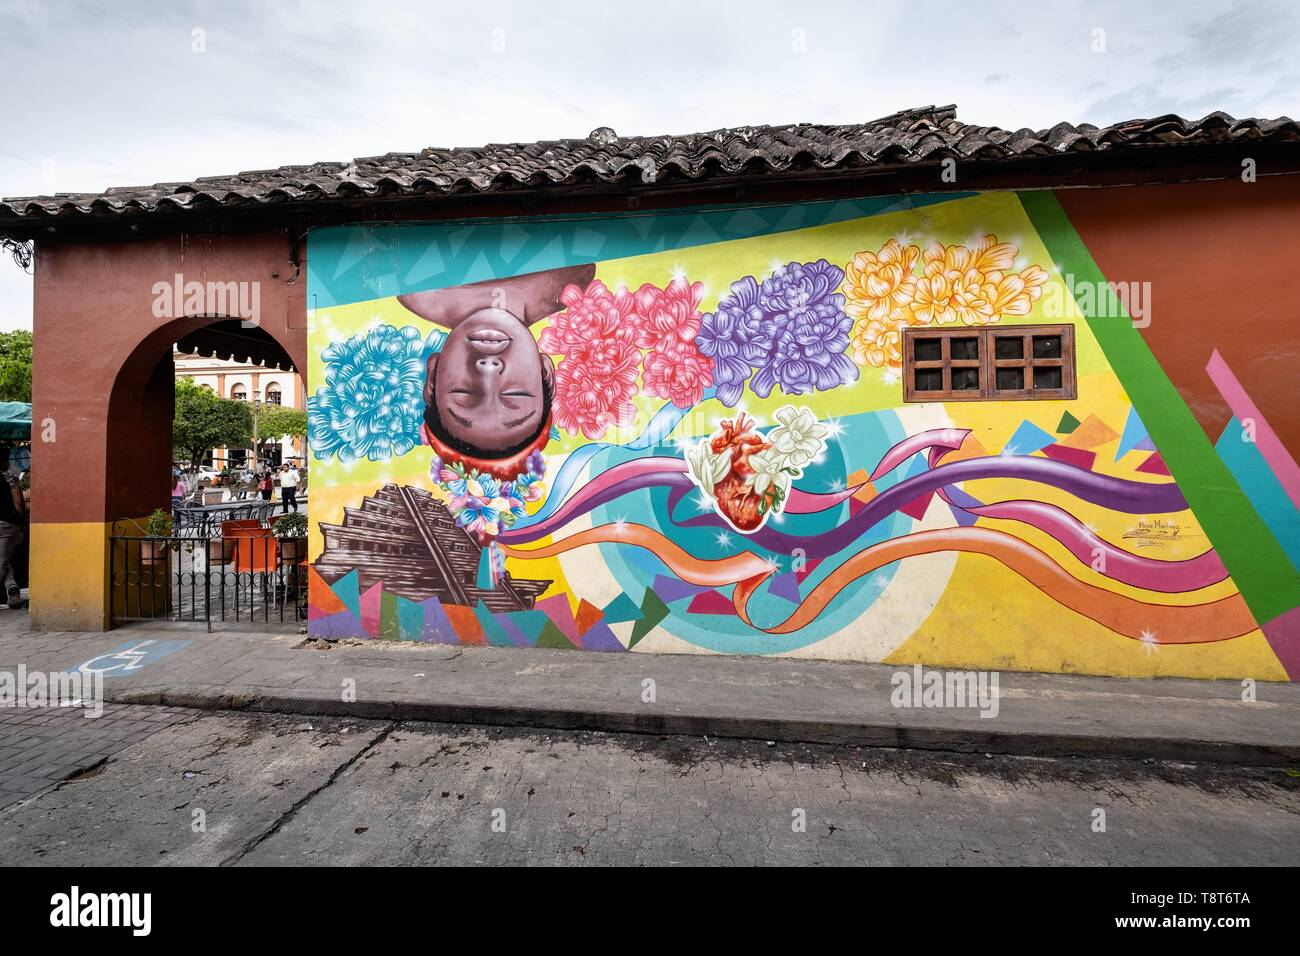 A mural honoring the indigenous Totonac culture by Teodoro Cano Garcia, in the Plaza Central Israel Tellez Park in Papantla, Veracruz, Mexico. - Stock Image